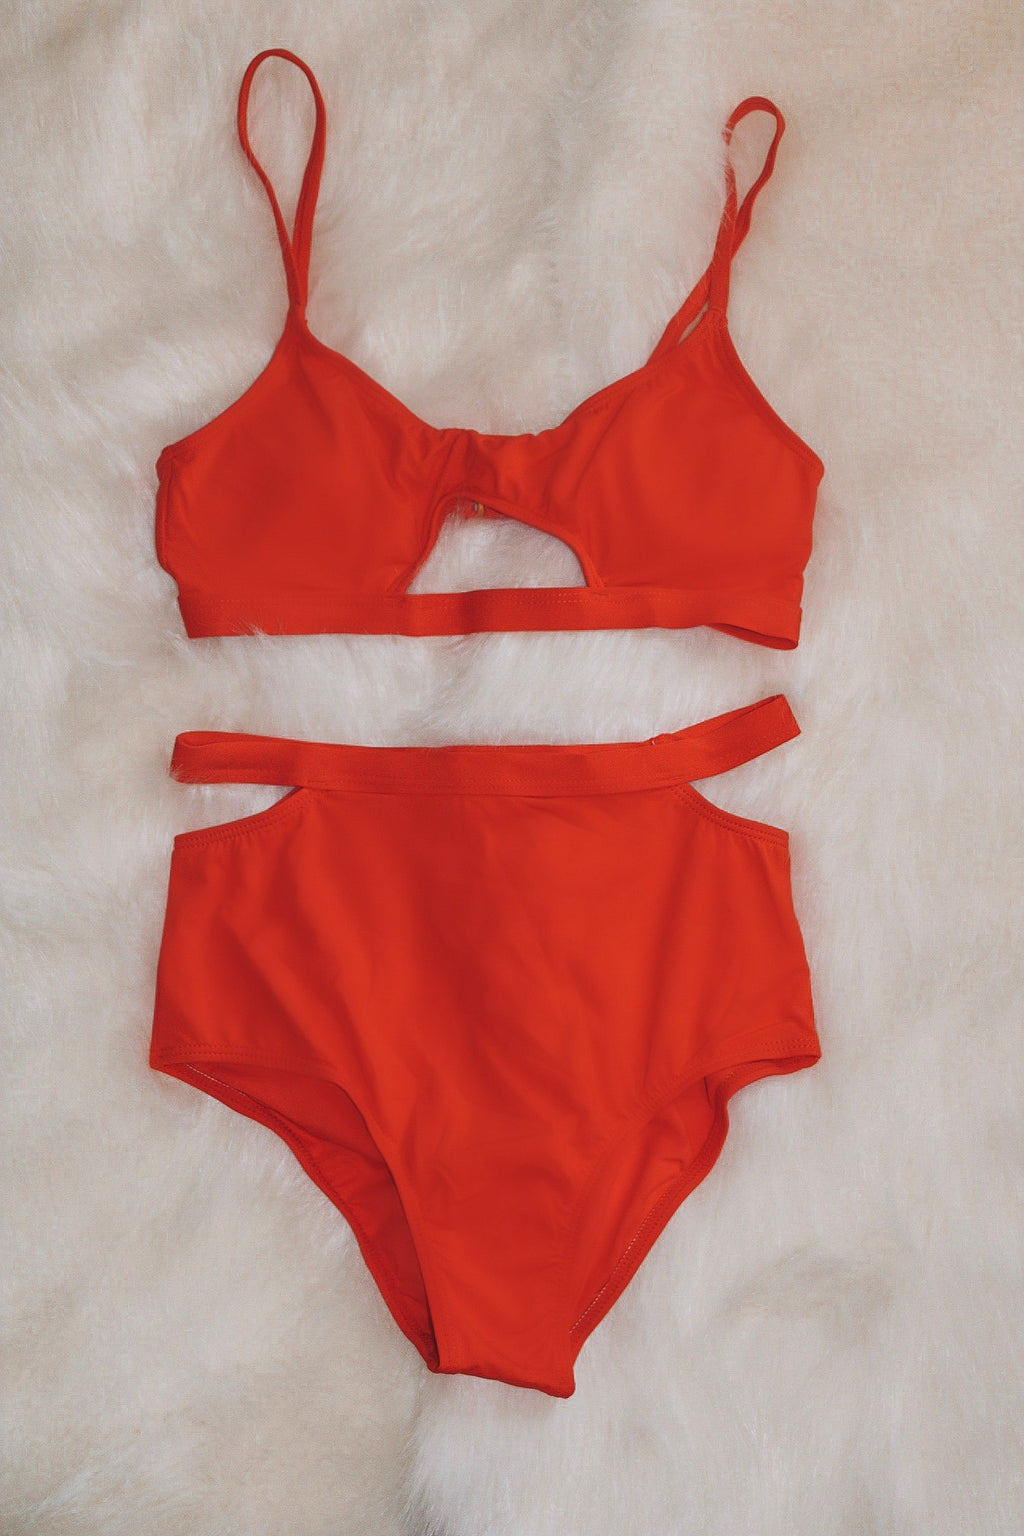 Cut The Waves Bikini - Red